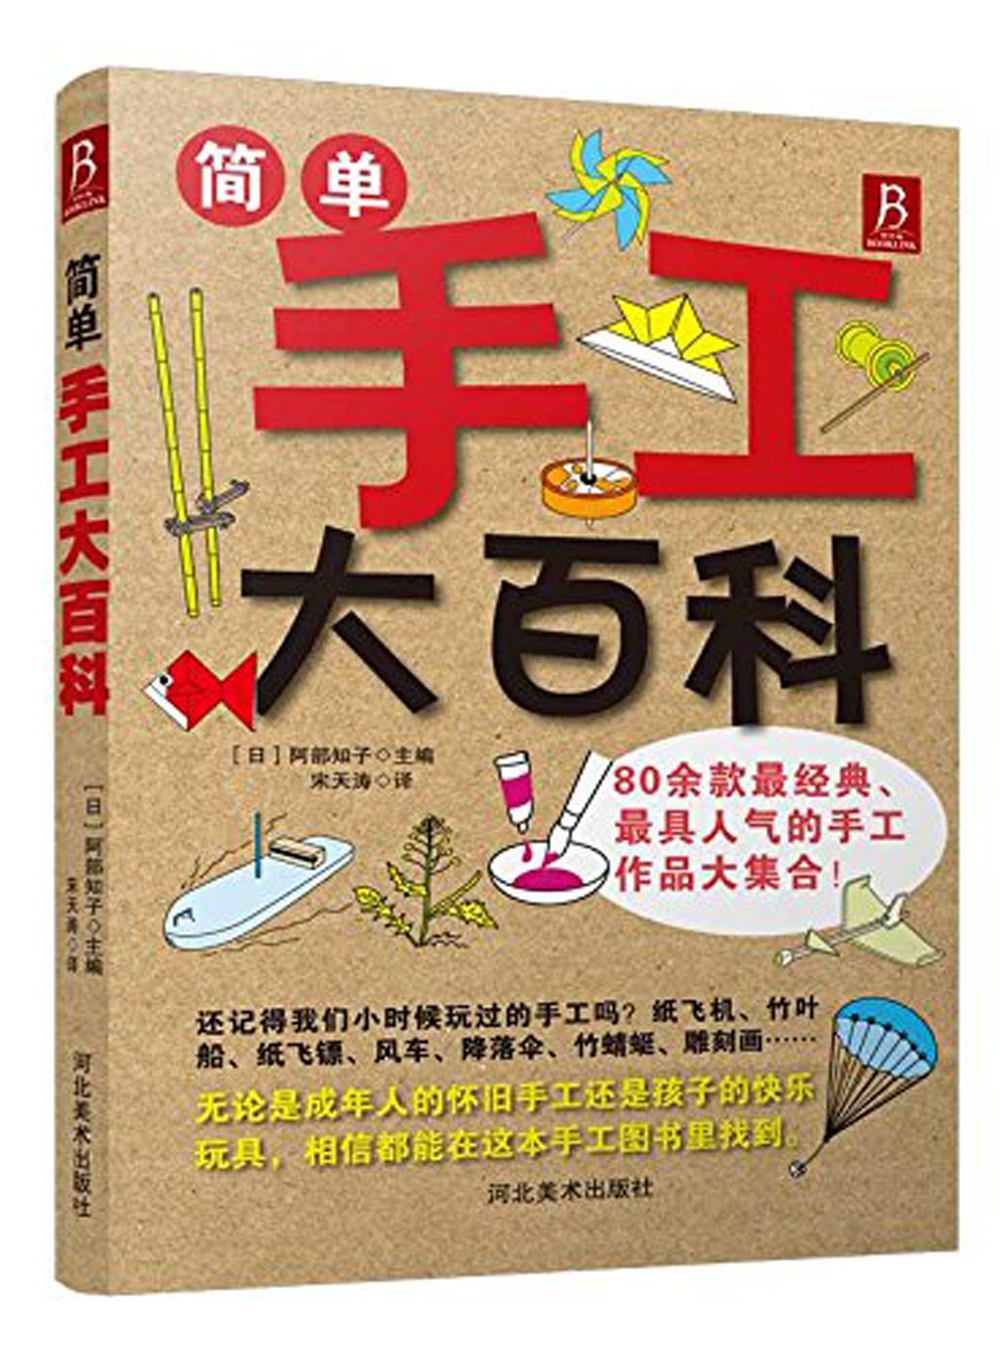 Simple Manual Encyclopedia / Chinese Handmade Carft Book